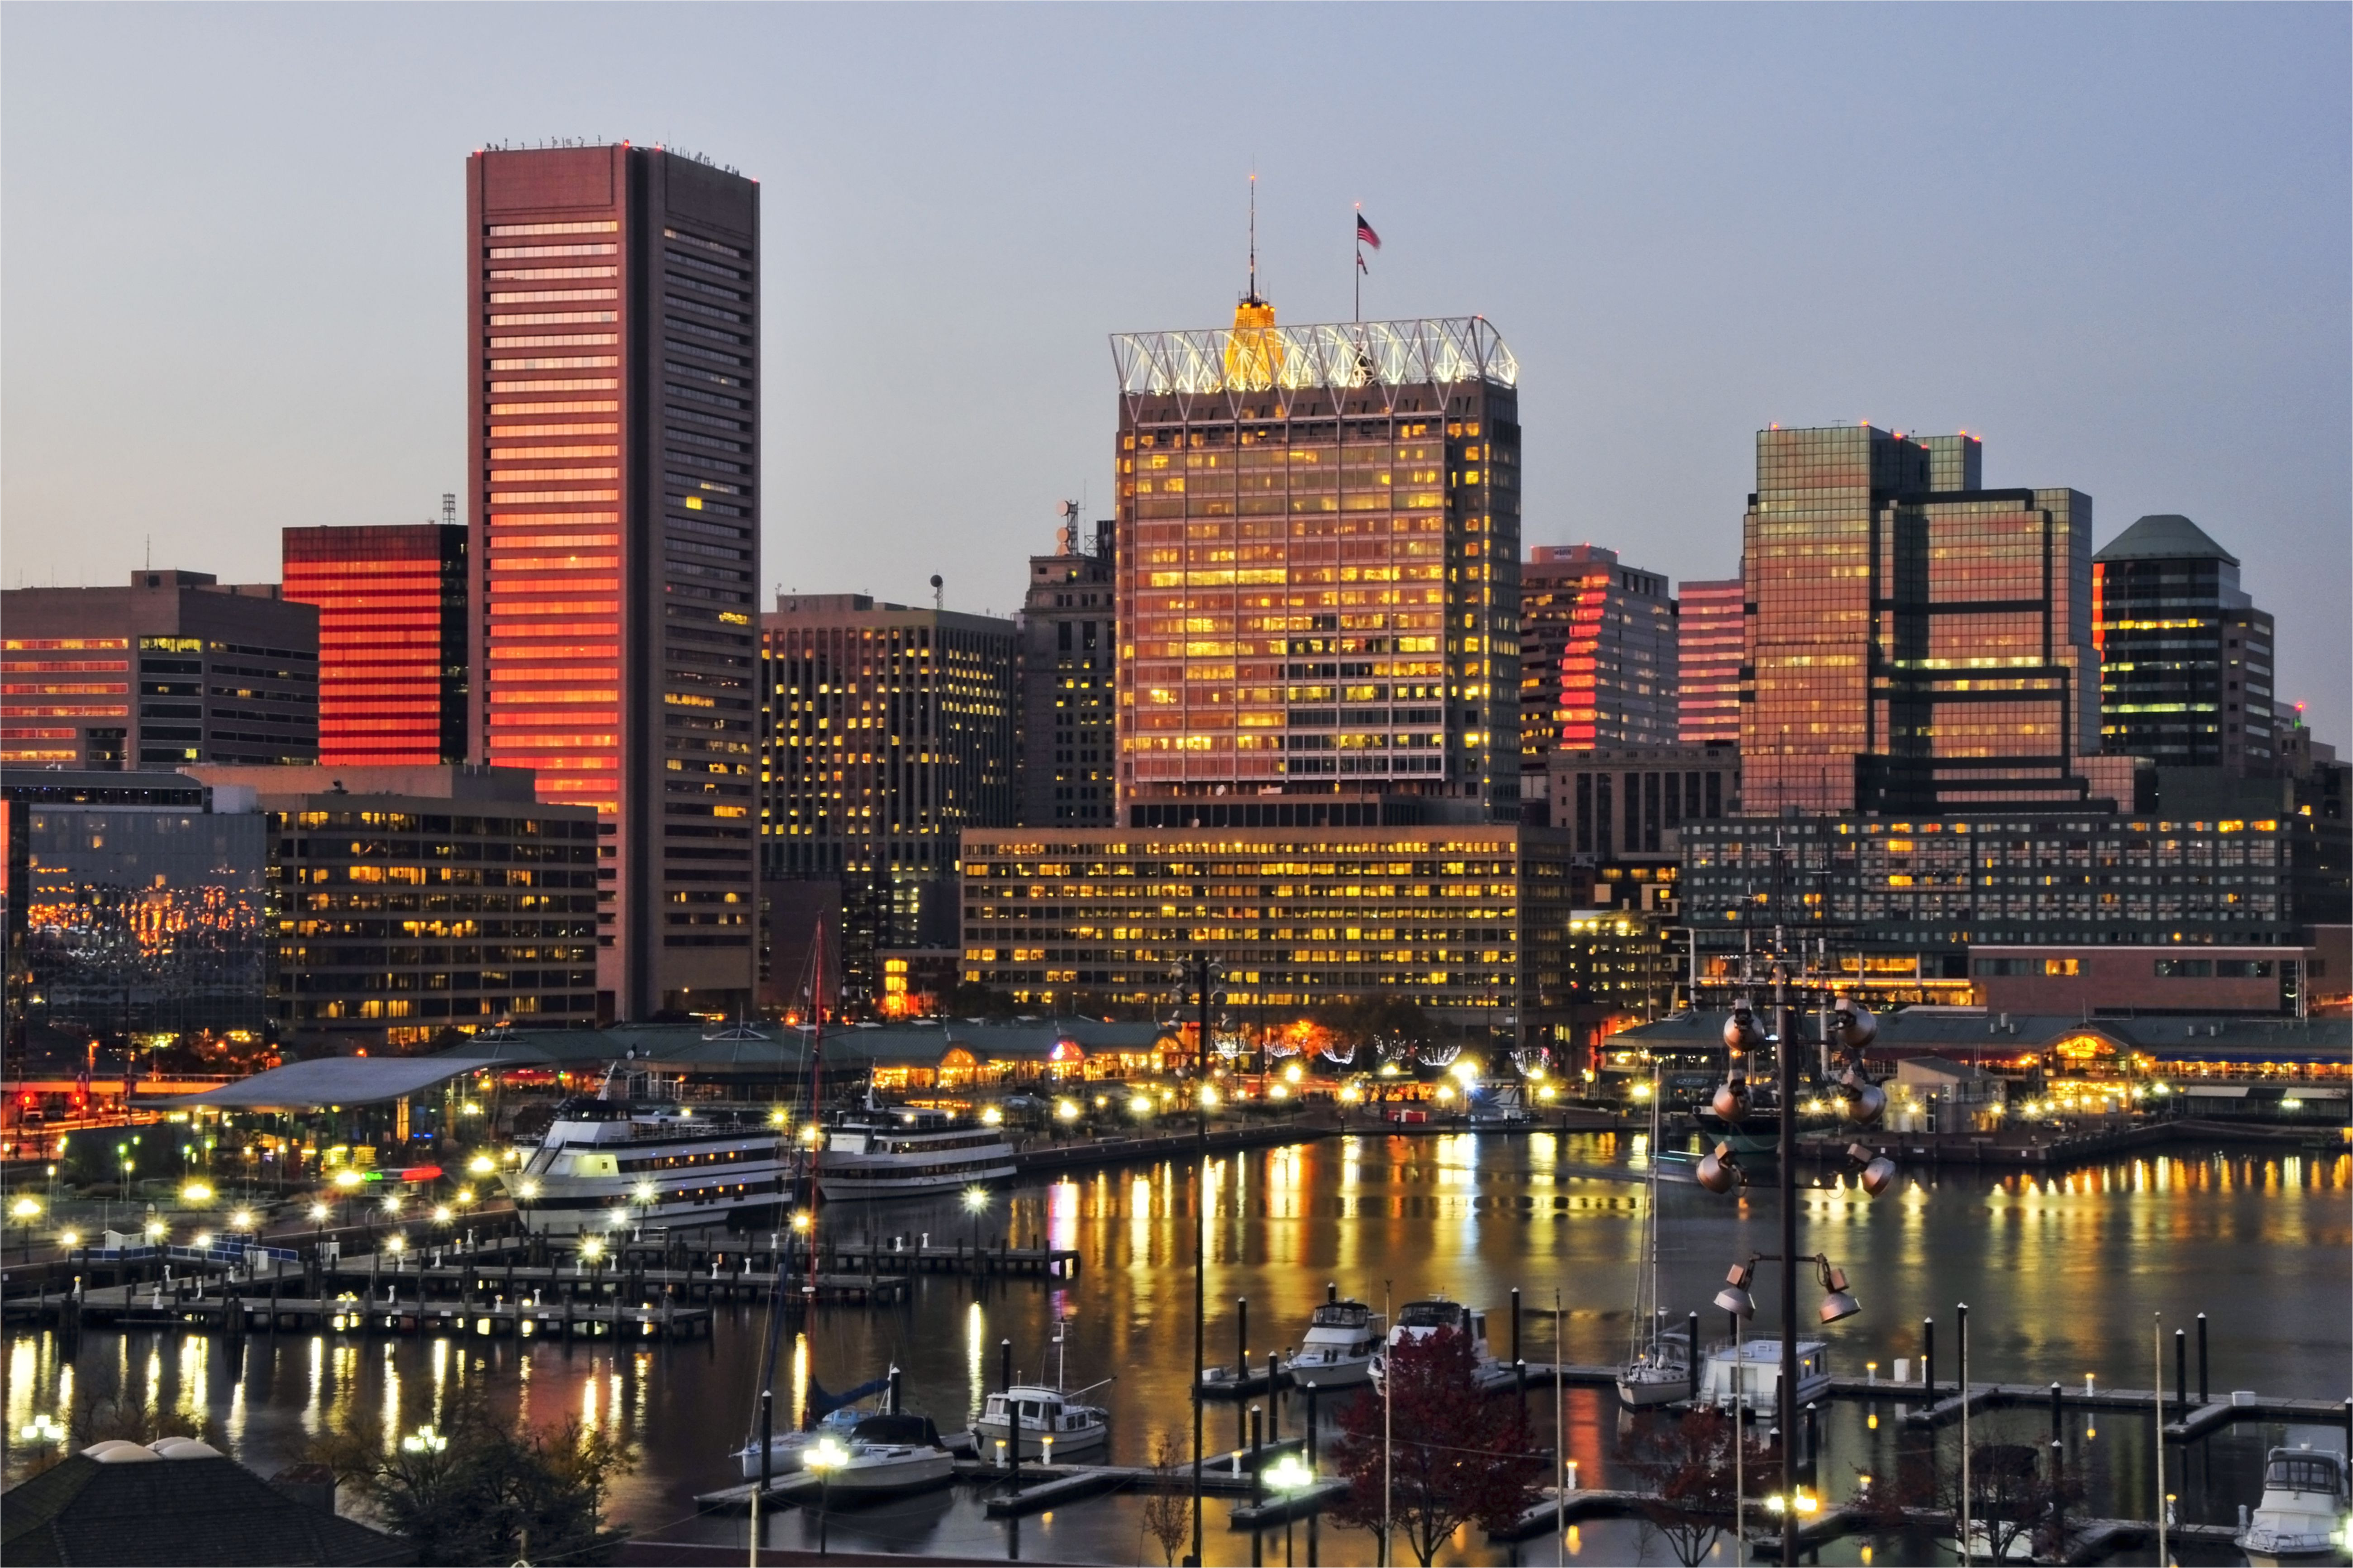 the sunset reflects off the windows of the baltimore city skyline at dusk maryland 112232760 5c0ea95d46e0fb000160fa96 jpg